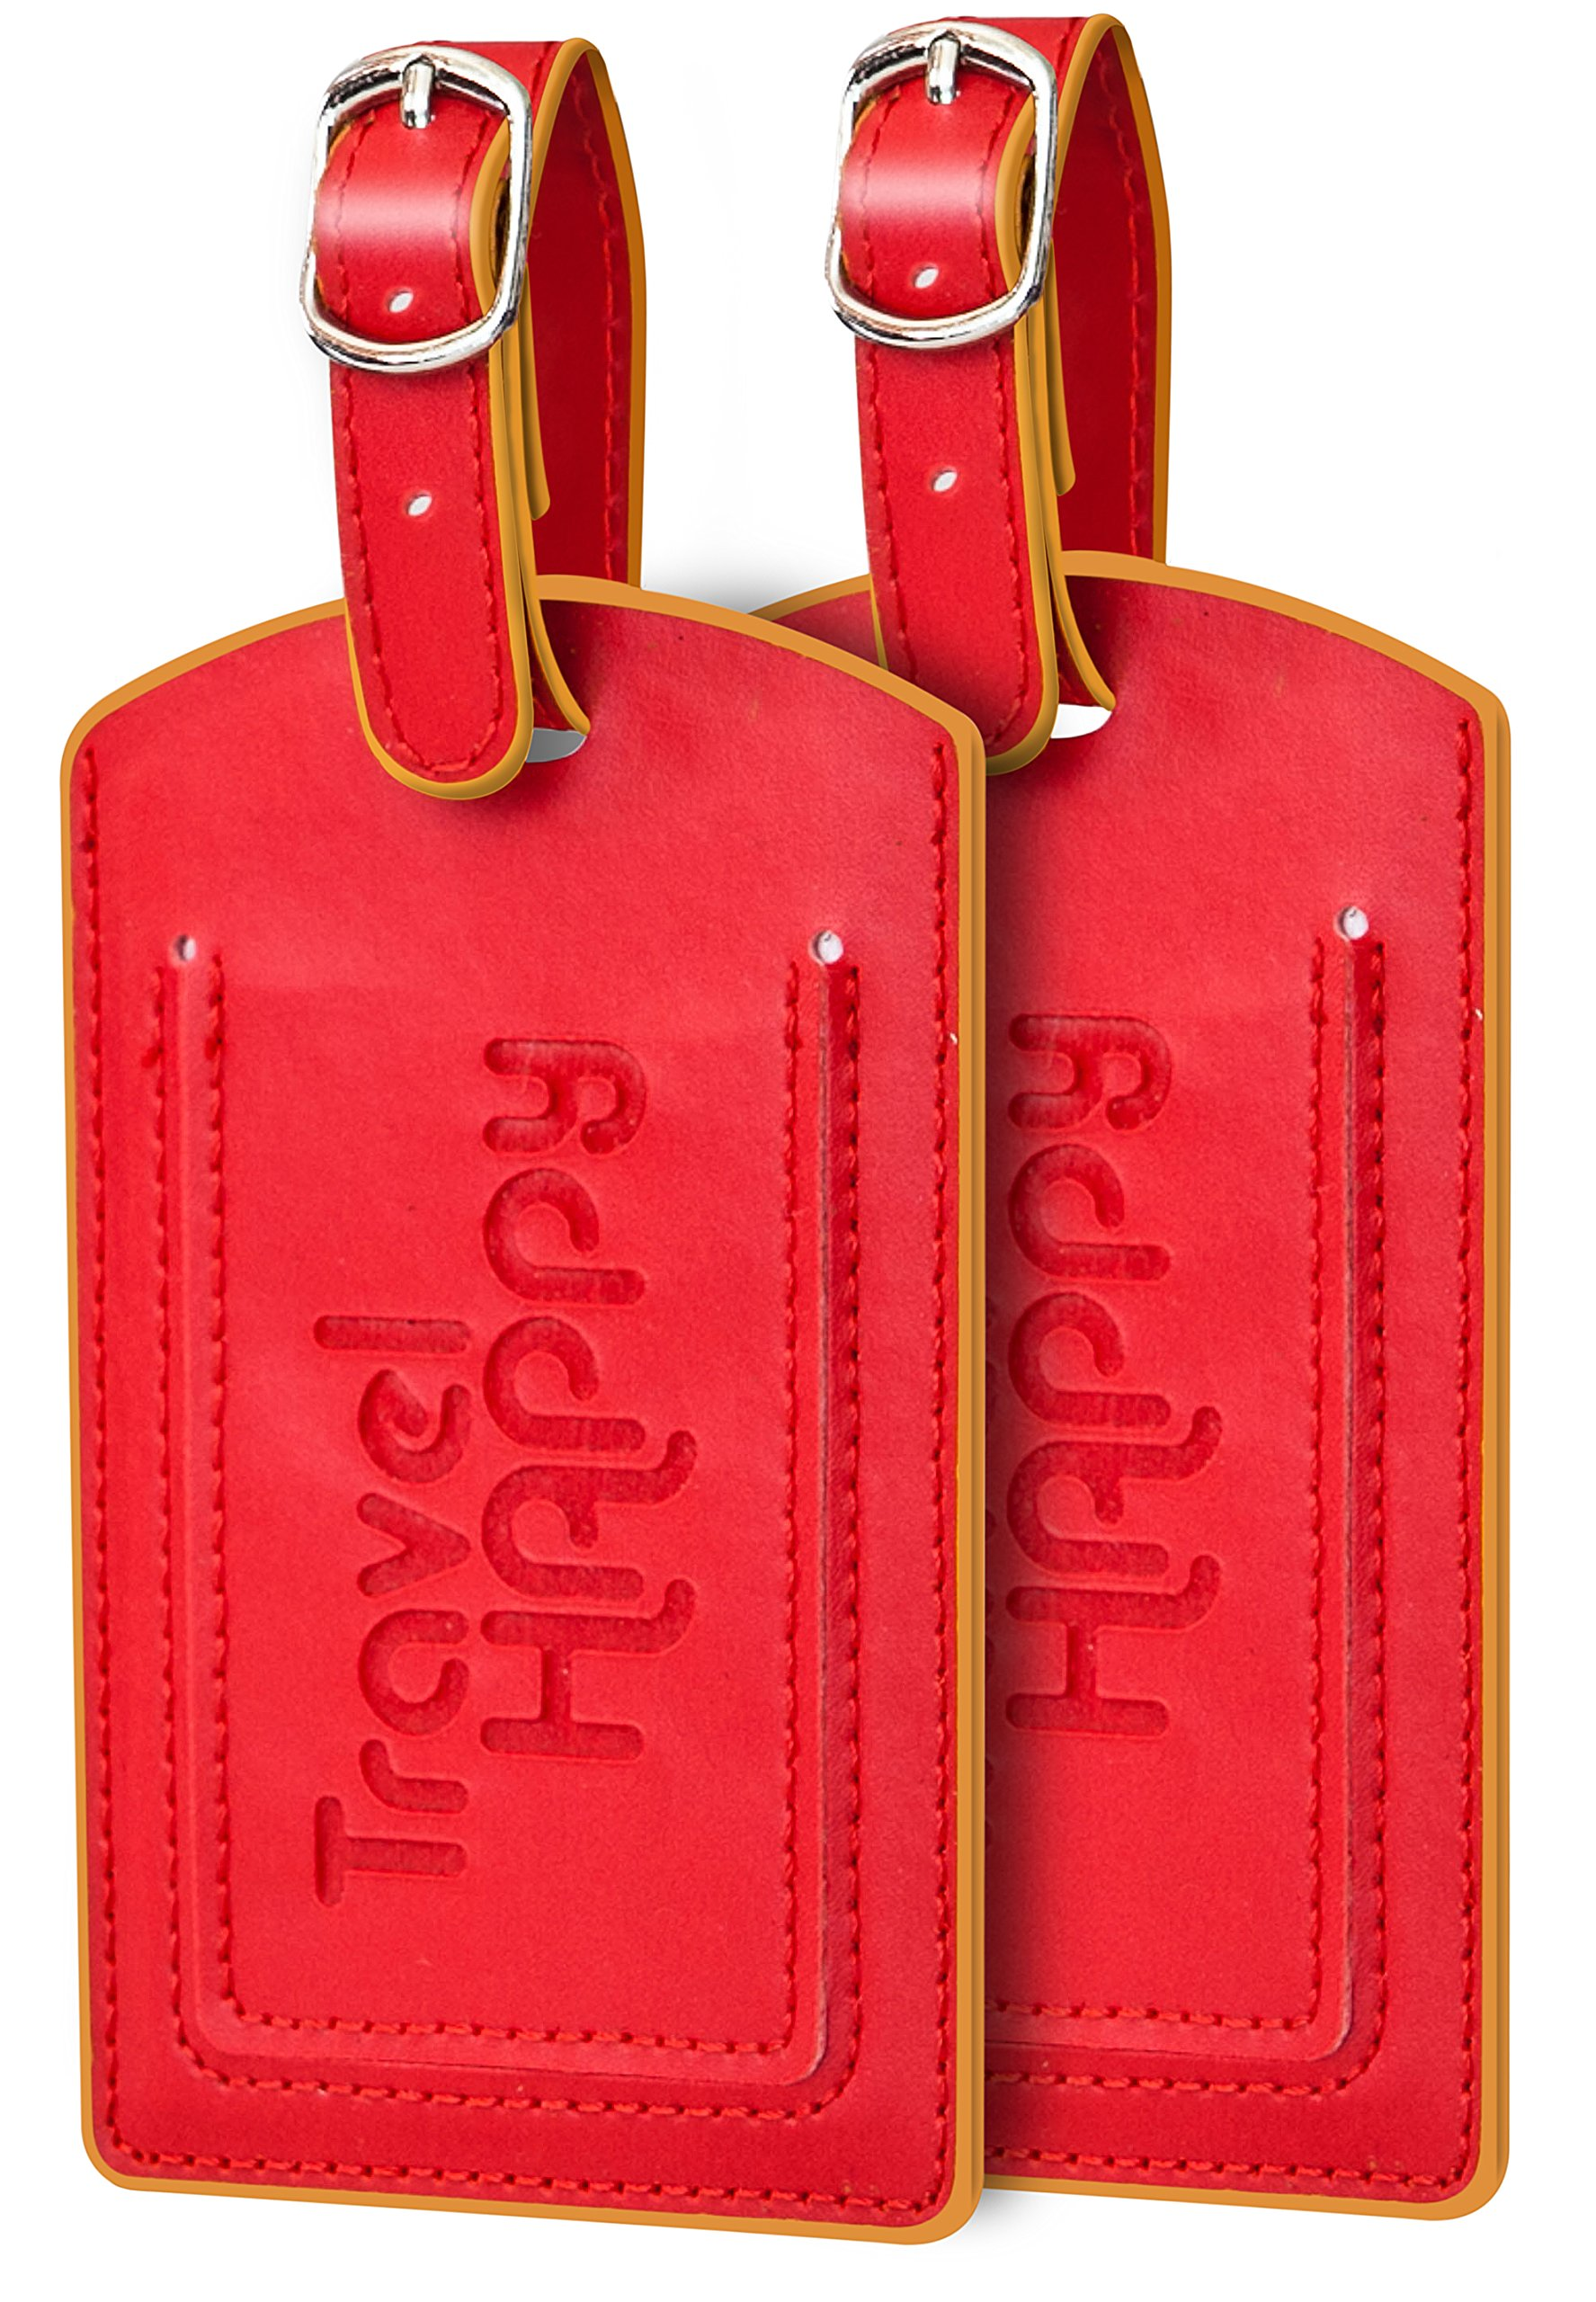 Bellerina Luggage Tags. Set of 2. Emperor Red. Easy to Spot, Stylish with Privacy Cover For Bags